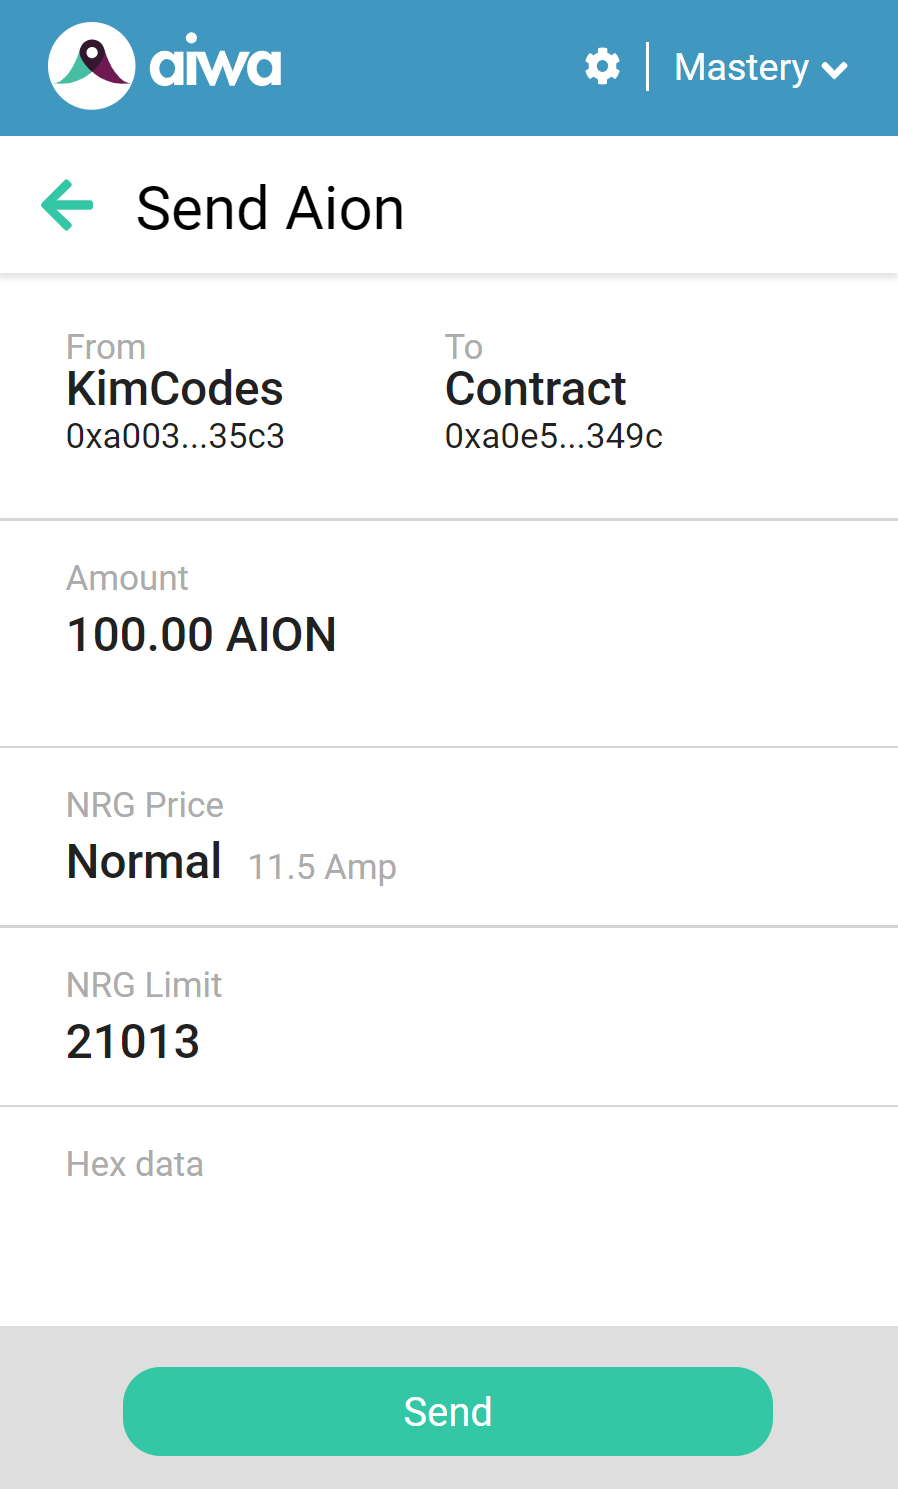 Sending 100 AION to Contract Address